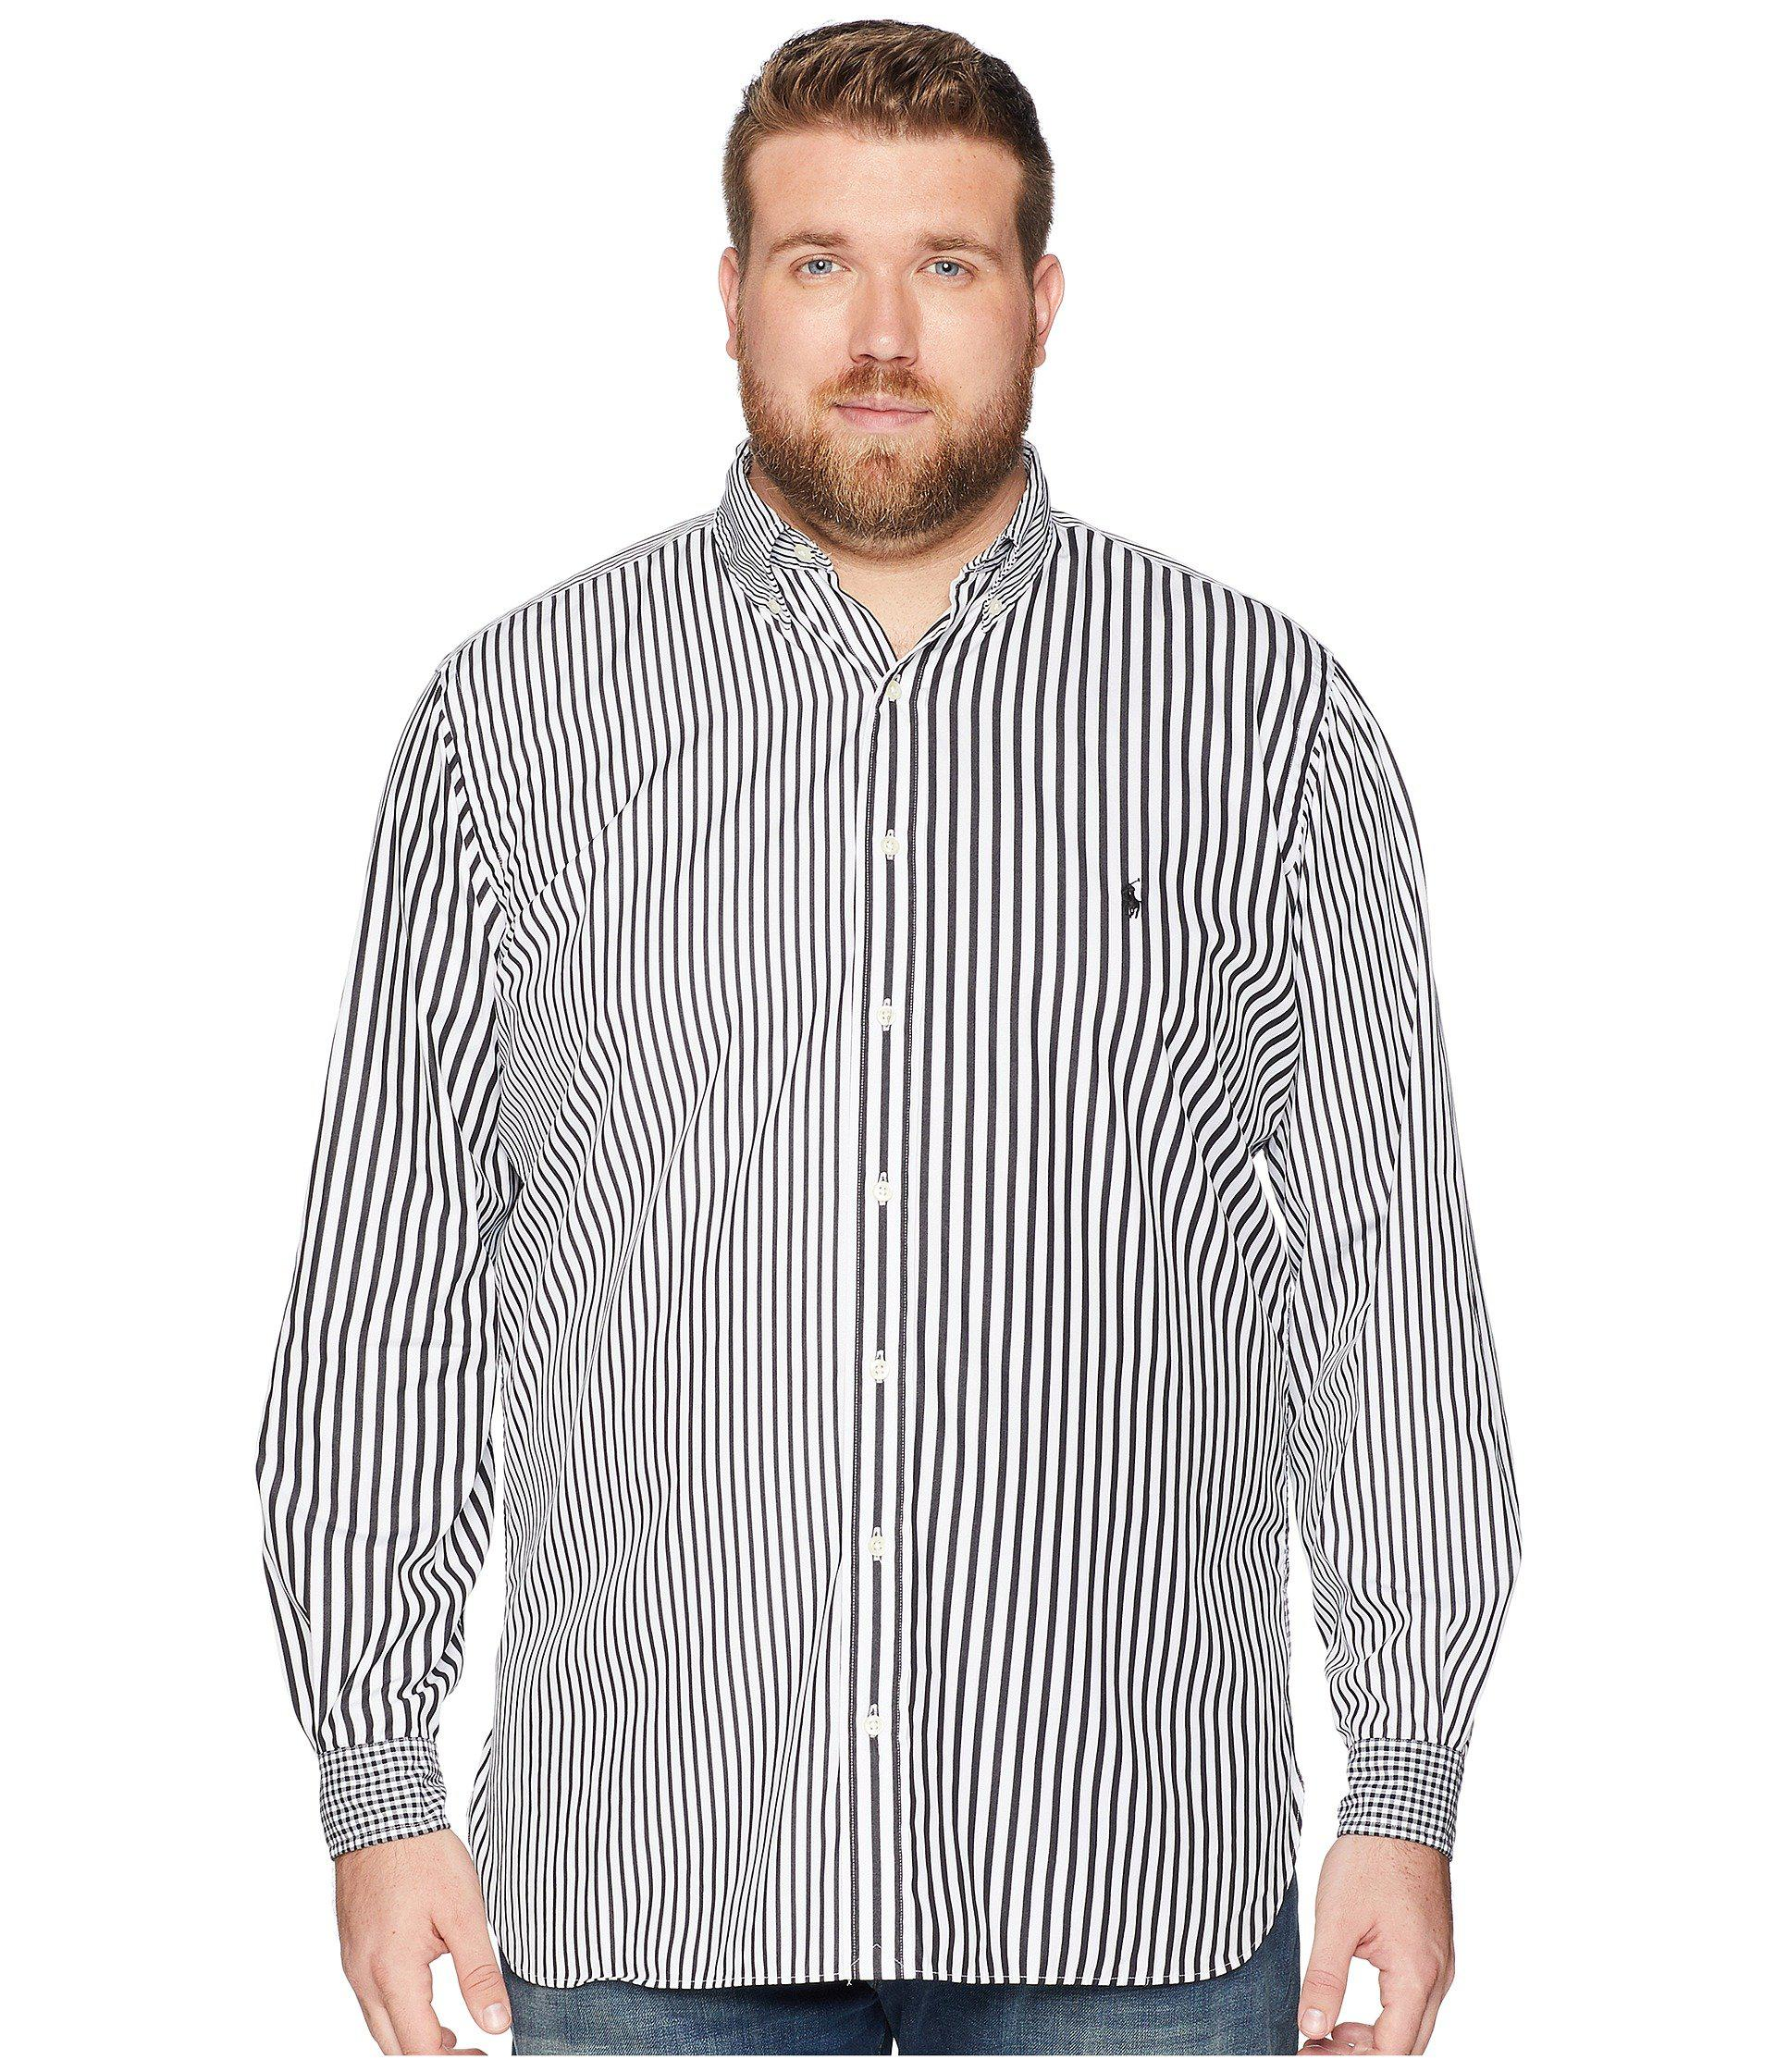 72070f72 clearance lyst polo ralph lauren slim fit large check shirt in red ...